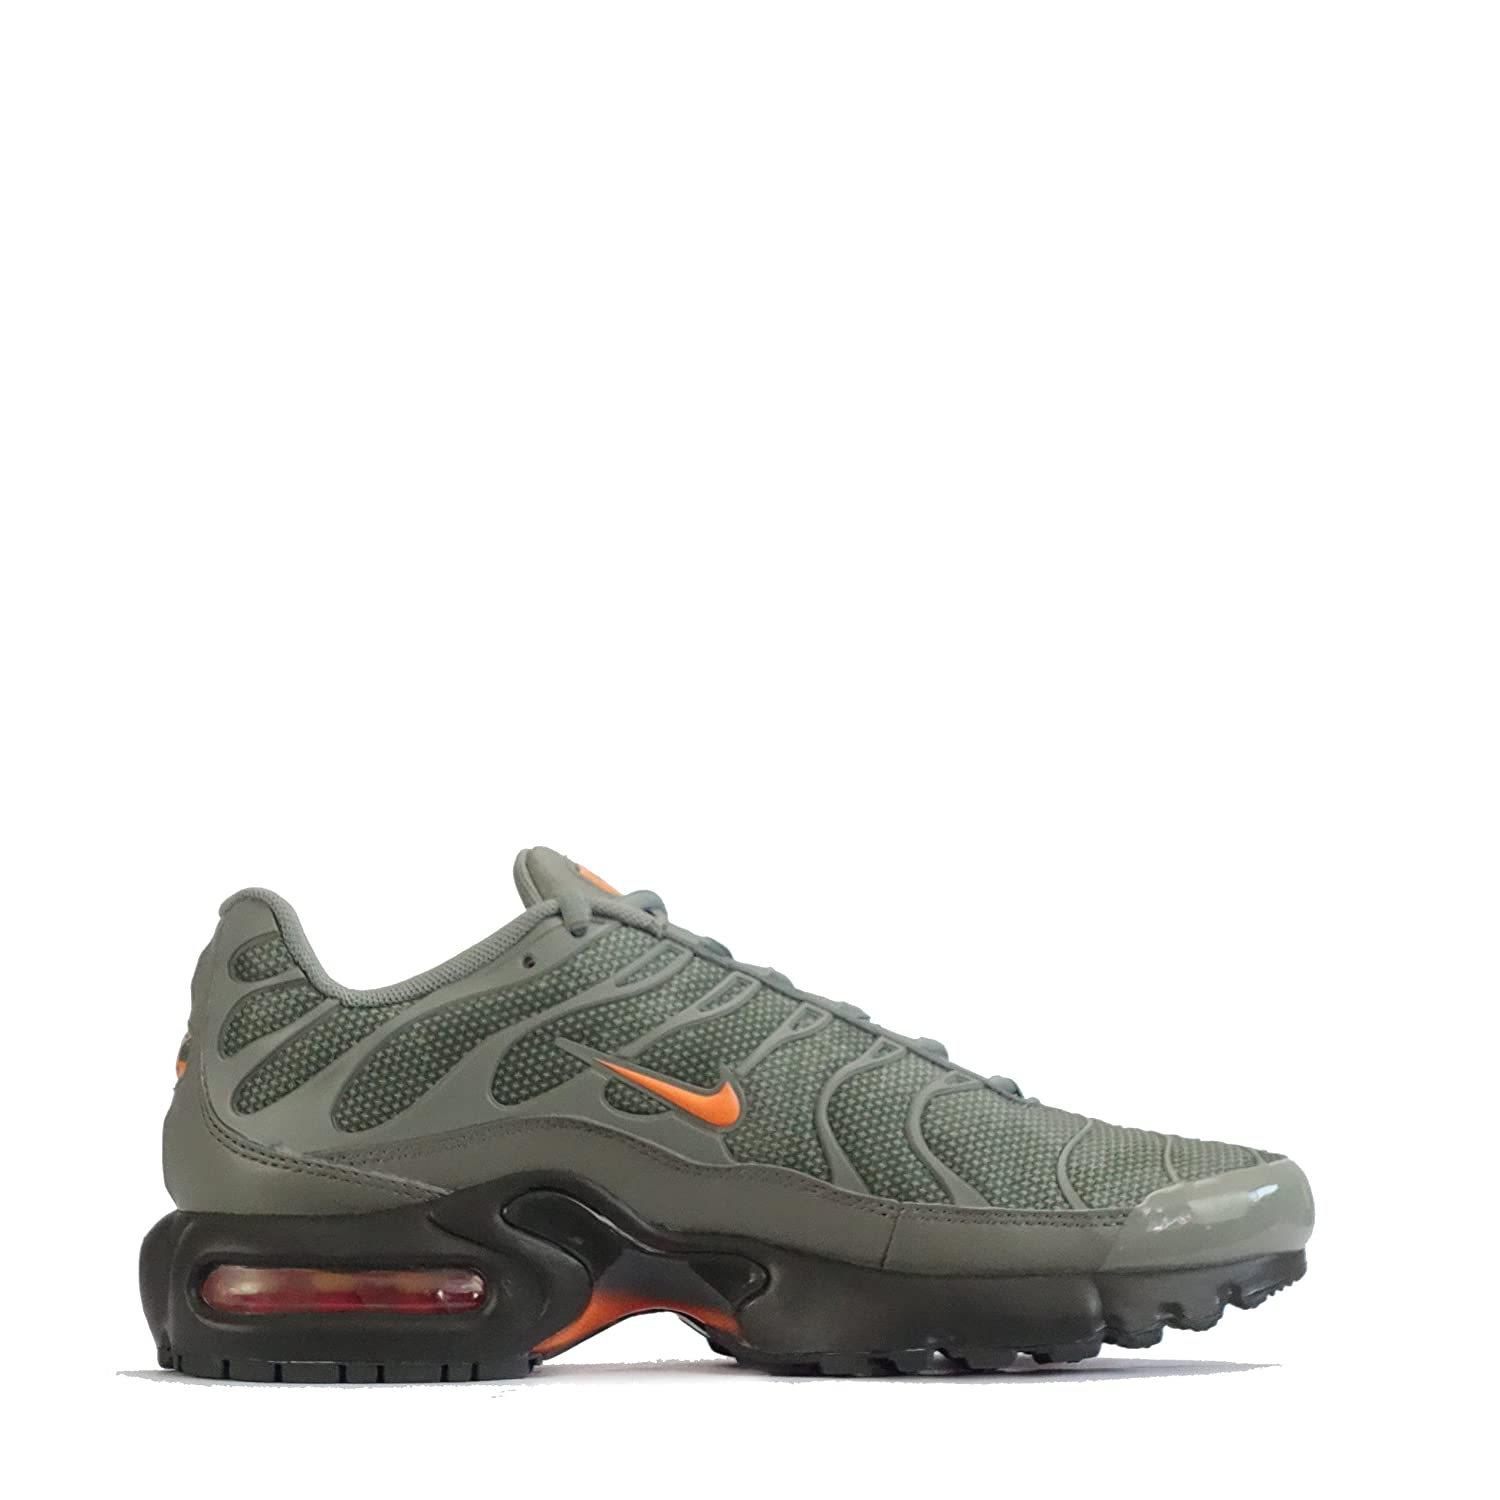 e4fa09345e Nike Air Max Plus SE TN1 Tuned Camo Junior Youth Trainers (UK 5.5):  Amazon.co.uk: Shoes & Bags